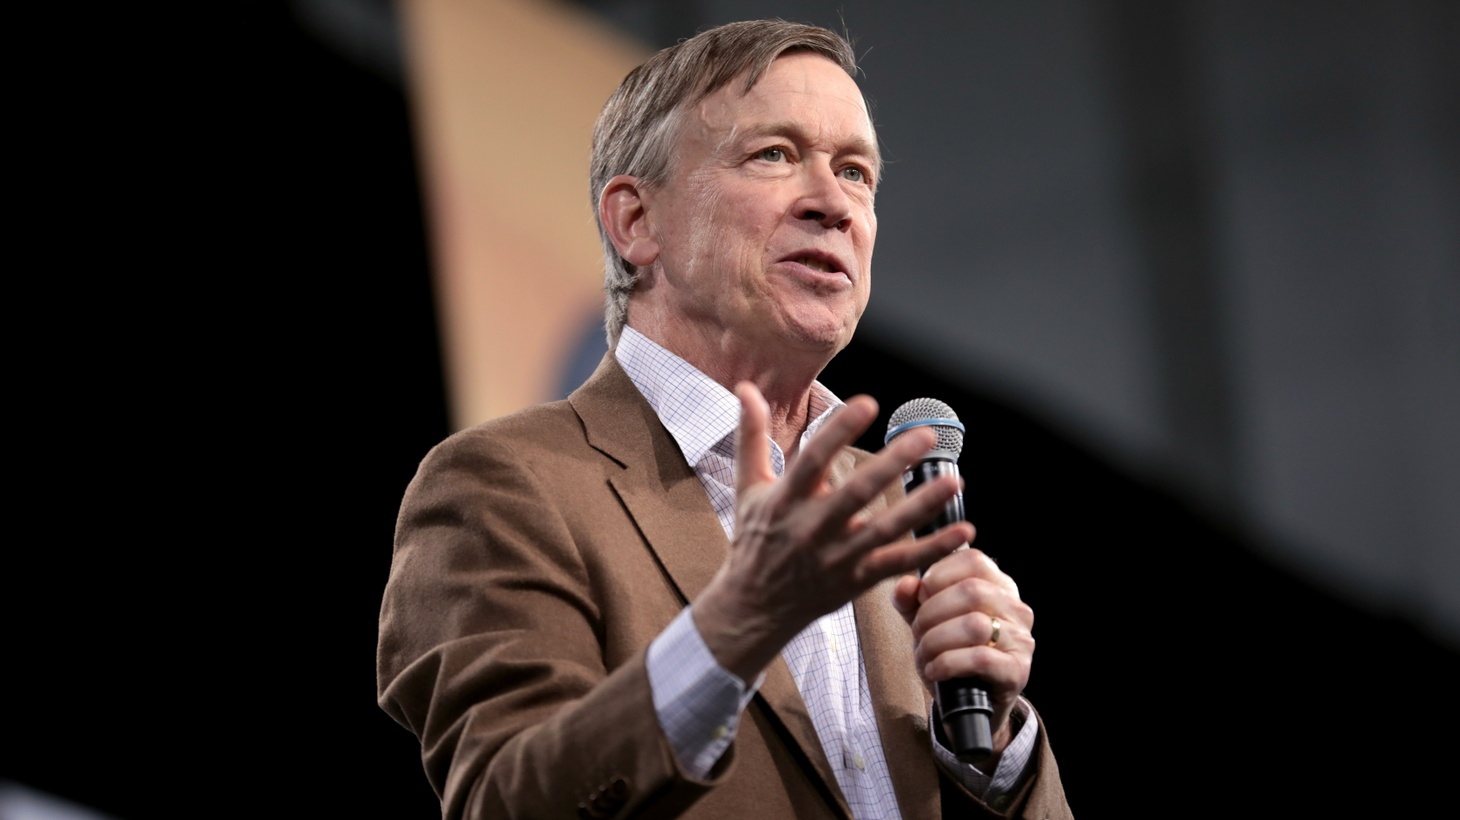 Former Governor John Hickenlooper speaking with attendees at the 2019 National Forum on Wages and Working People hosted by the Center for the American Progress Action Fund and the SEIU at the Enclave in Las Vegas, Nevada.